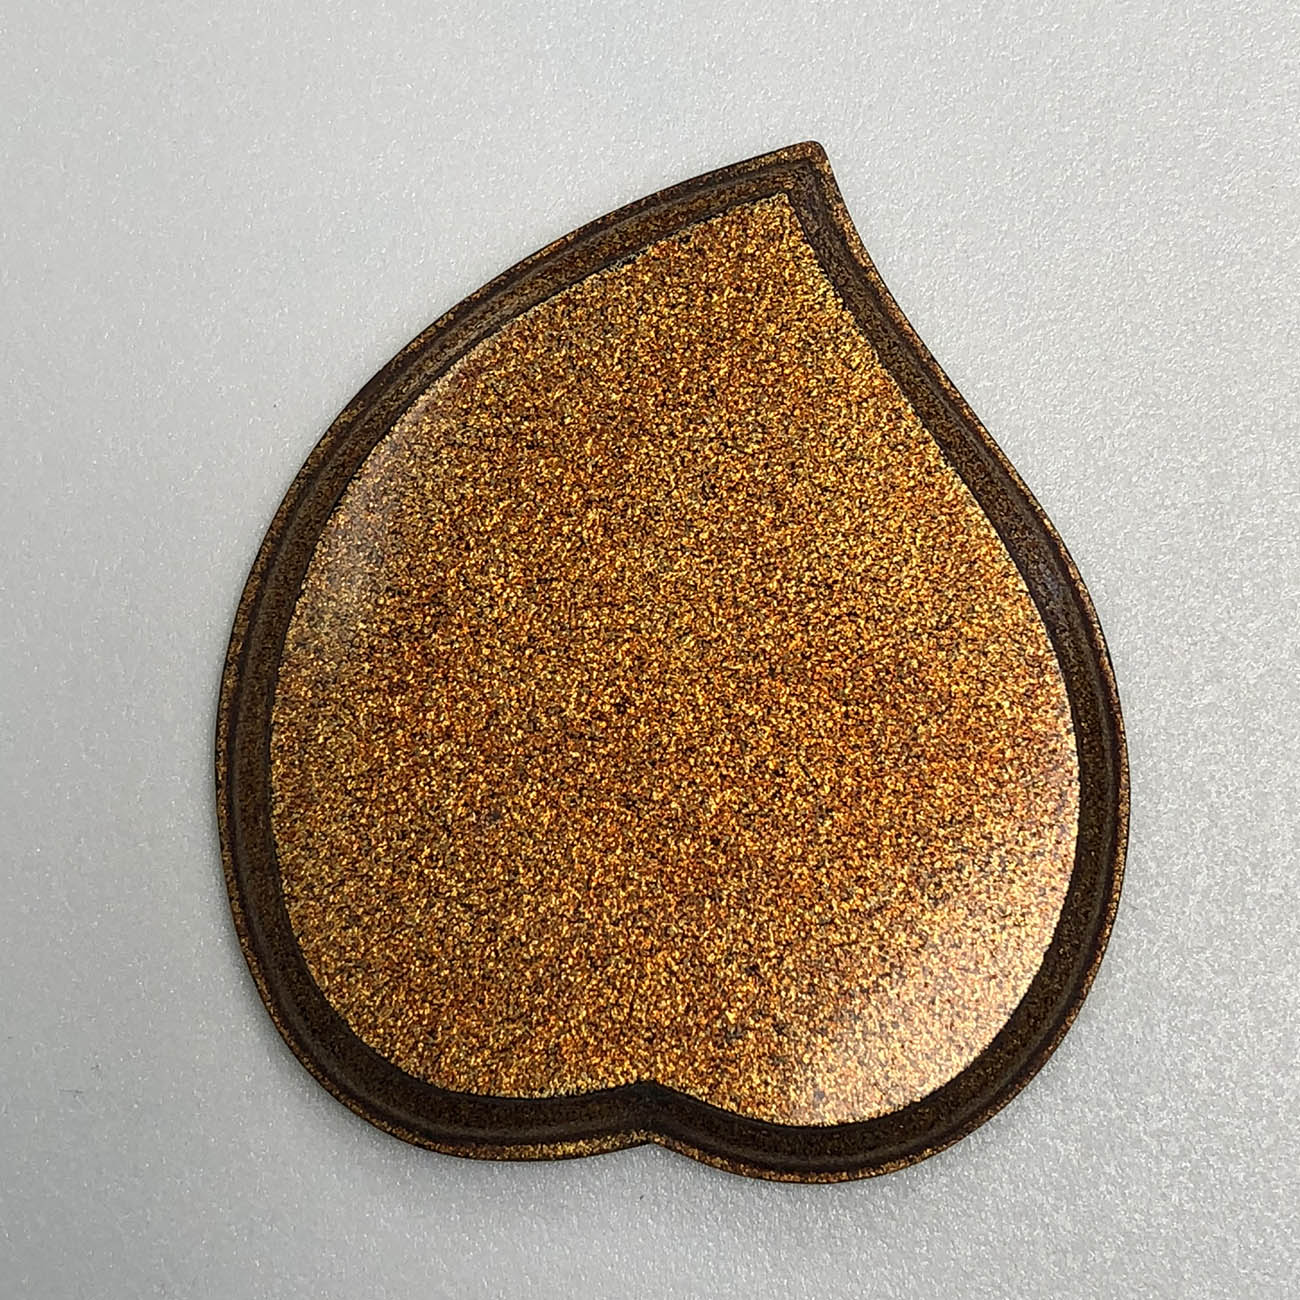 Underside of a peach shaped tray that is smooth and covered in what looks like a dense layer of gold and copper glitter.